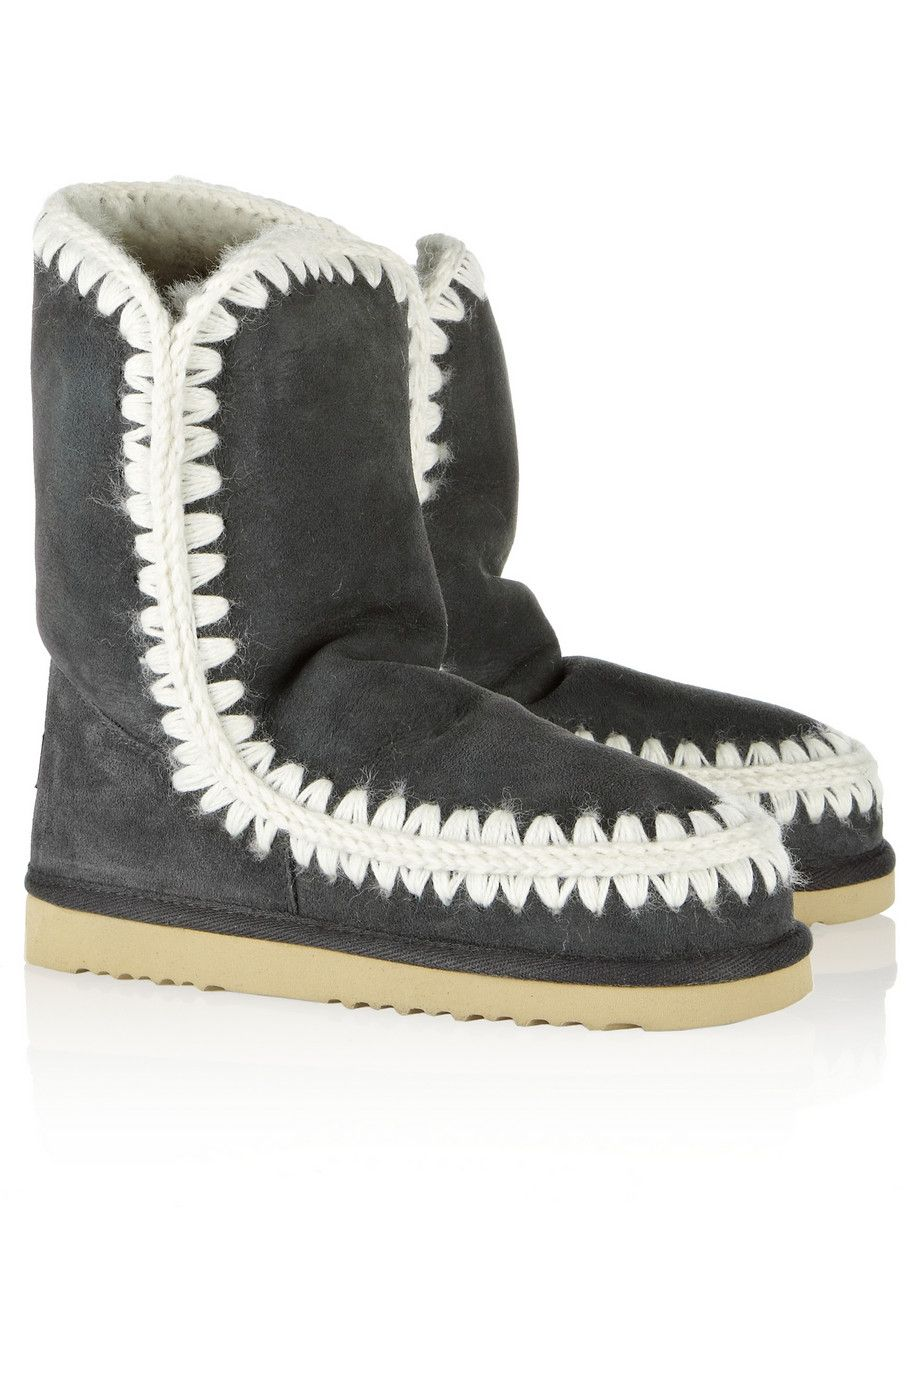 Shearling boots  by Mou  $280